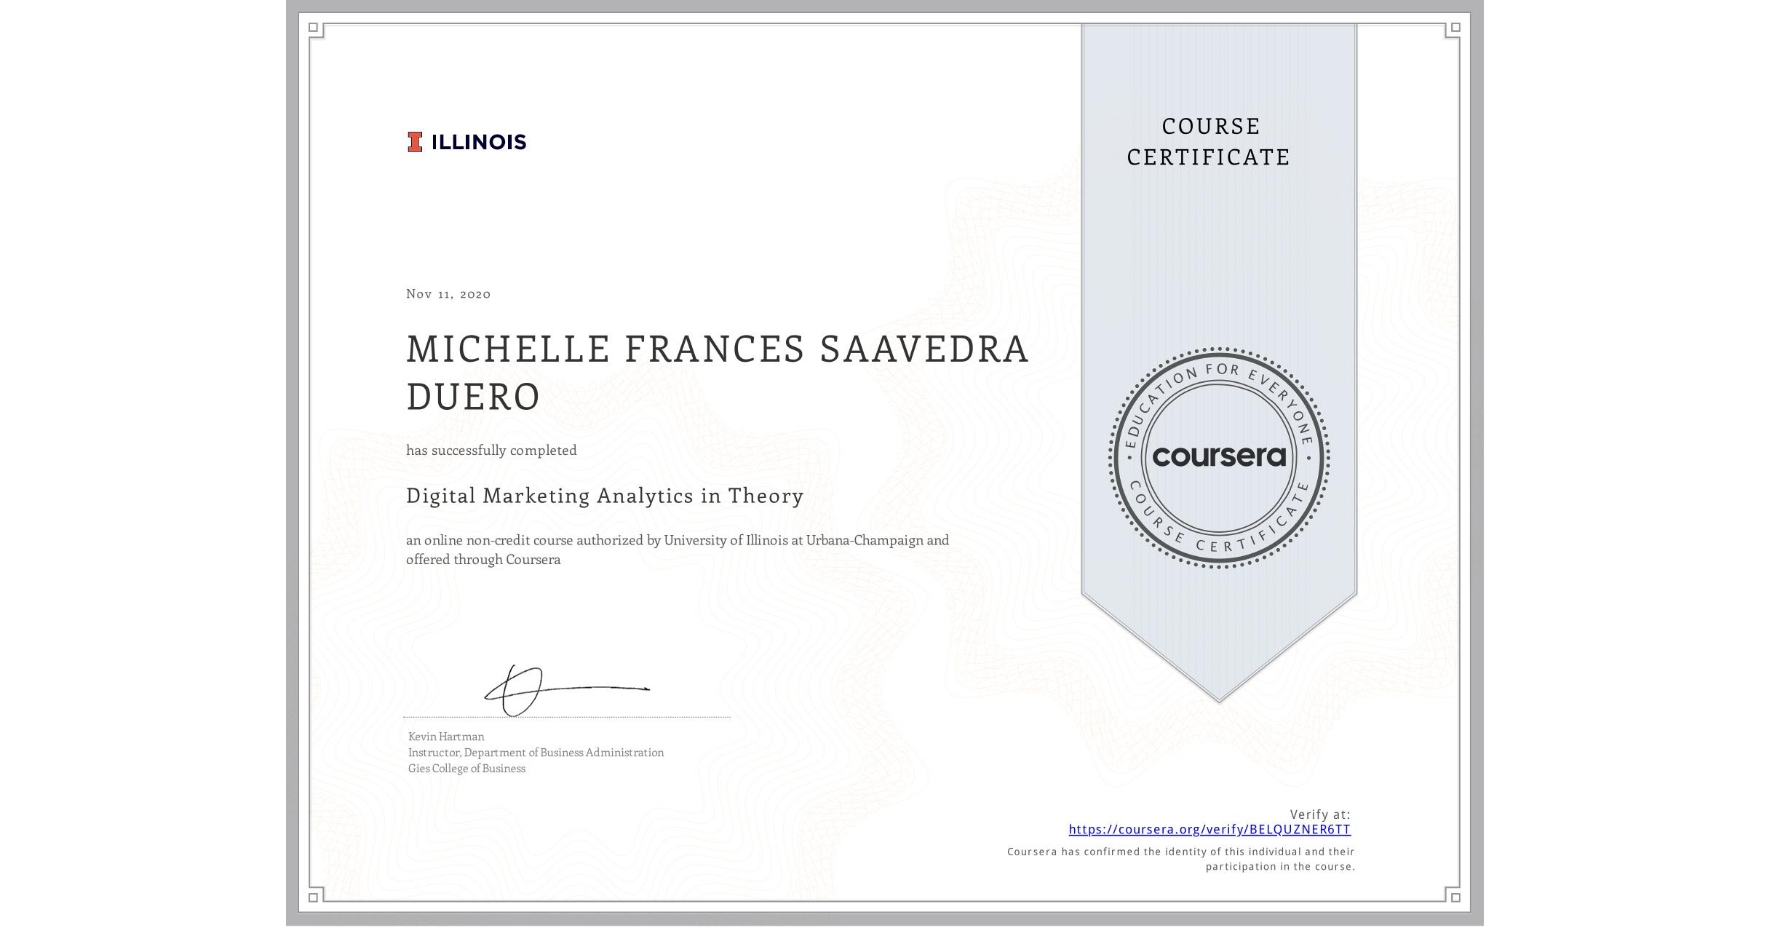 View certificate for MICHELLE FRANCES  SAAVEDRA DUERO, Digital Marketing Analytics in Theory, an online non-credit course authorized by University of Illinois at Urbana-Champaign and offered through Coursera